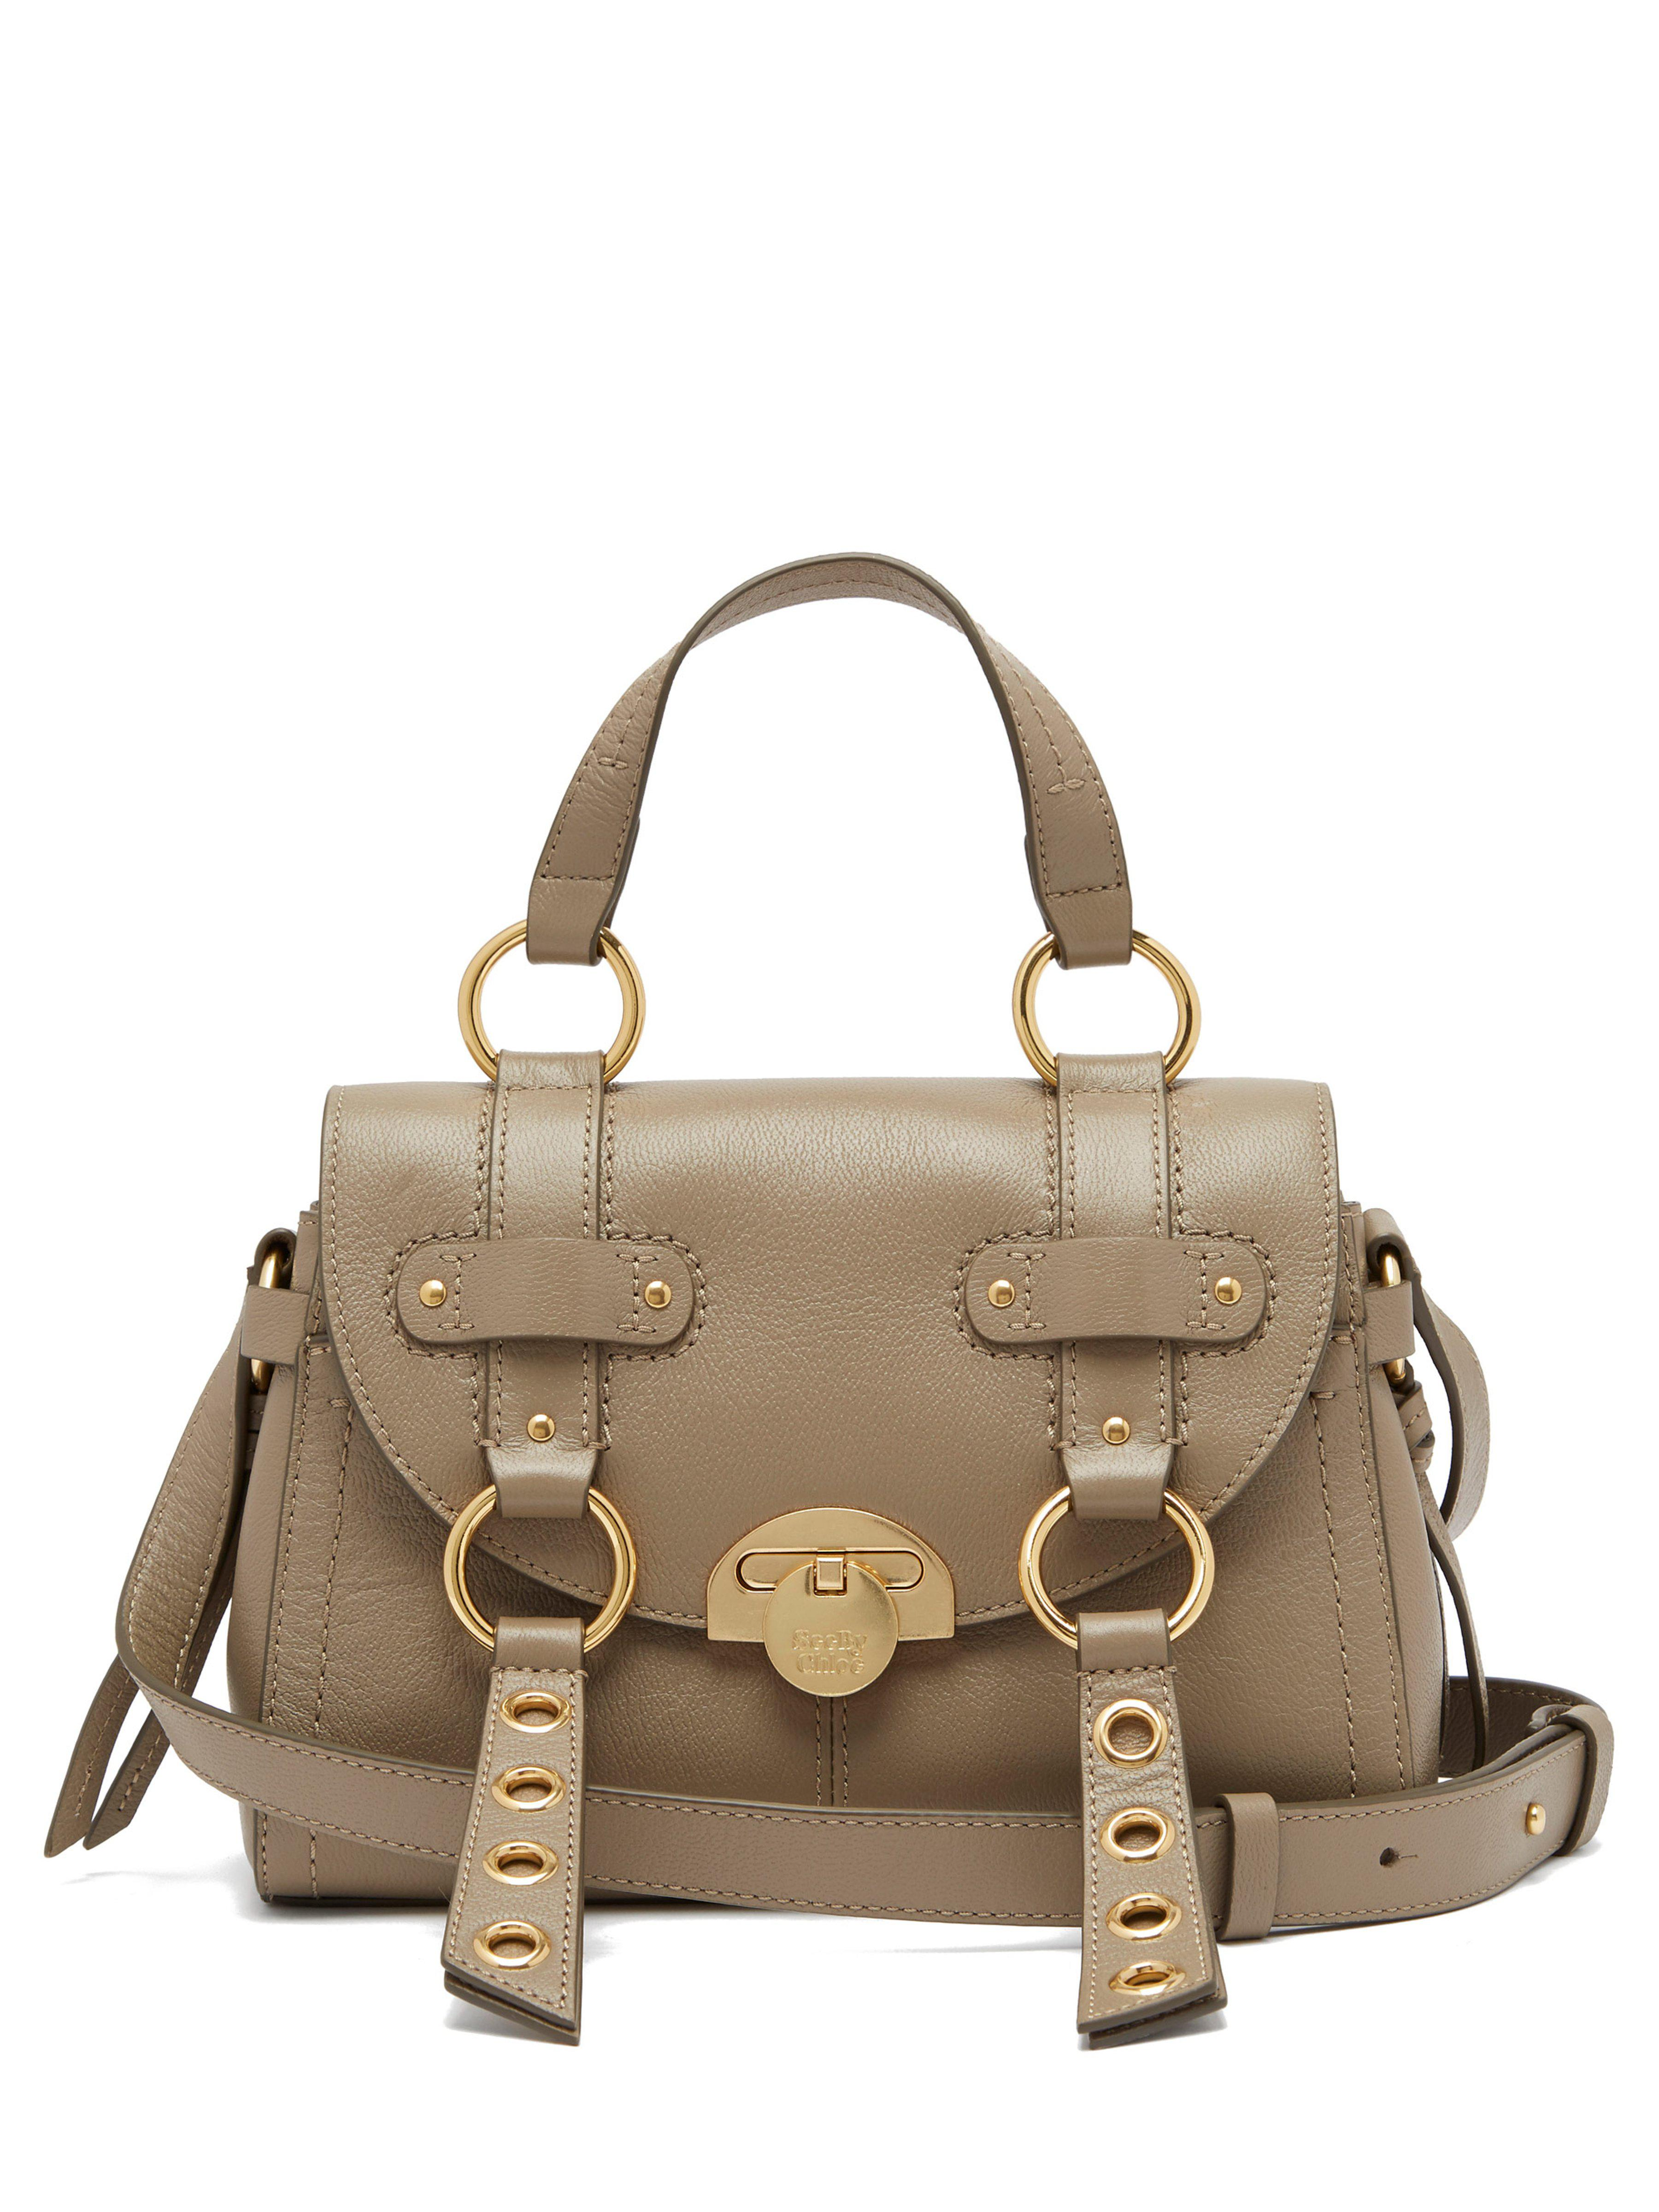 00329c8ae0 See By Chloé Allen Small Satchel Bag in Gray - Lyst